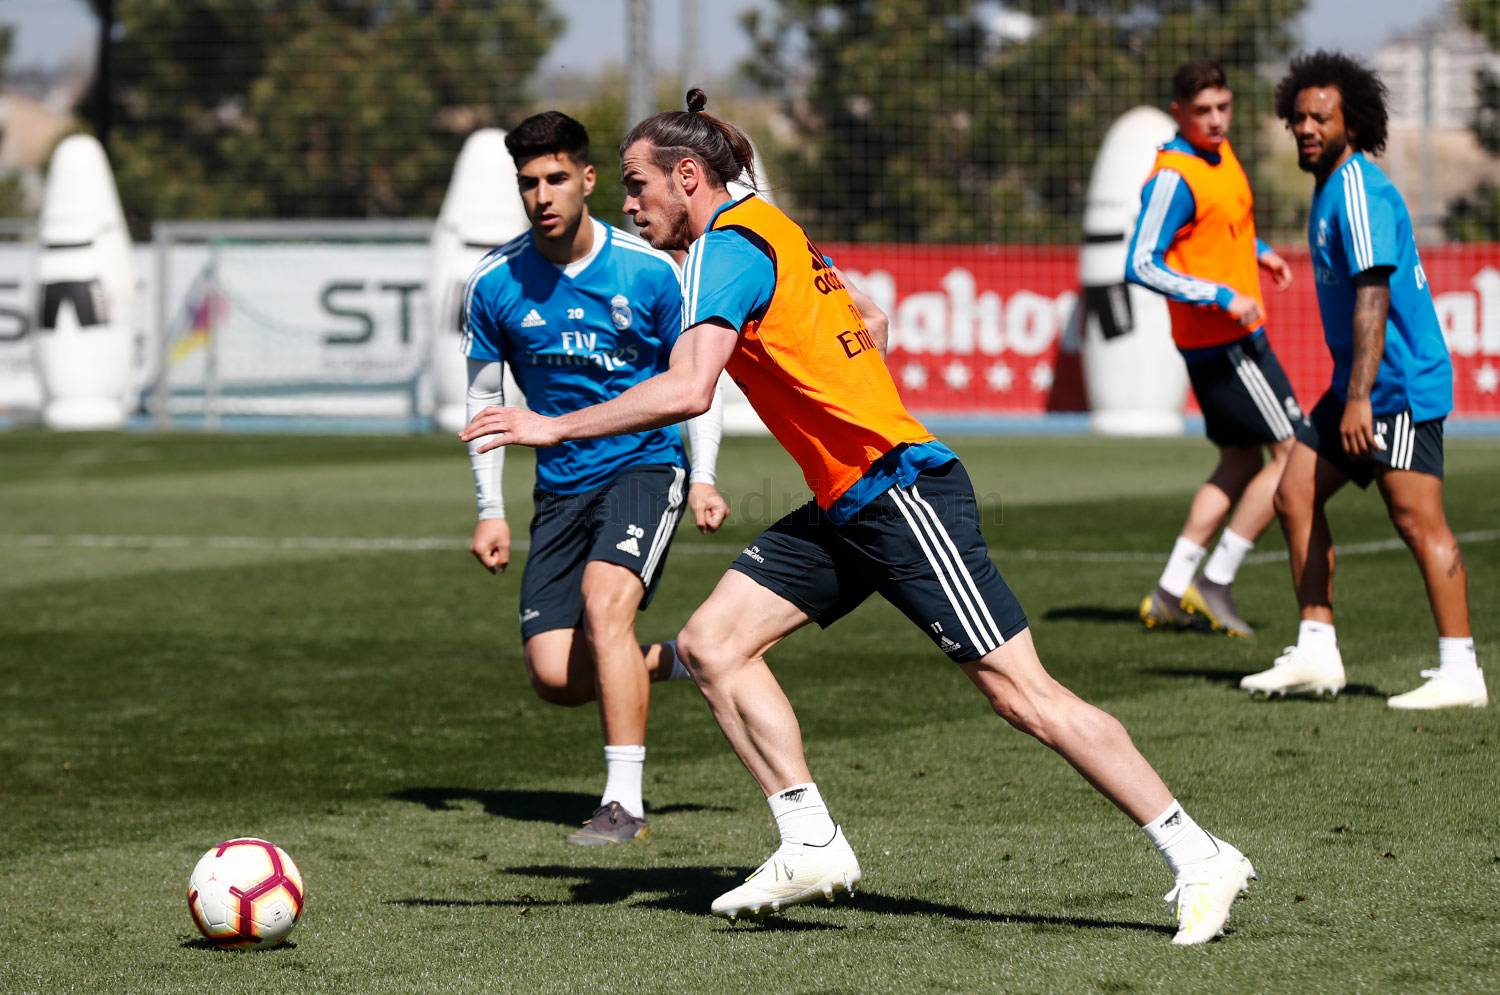 Real Madrid - Entrenamiento del Real Madrid - 30-03-2019